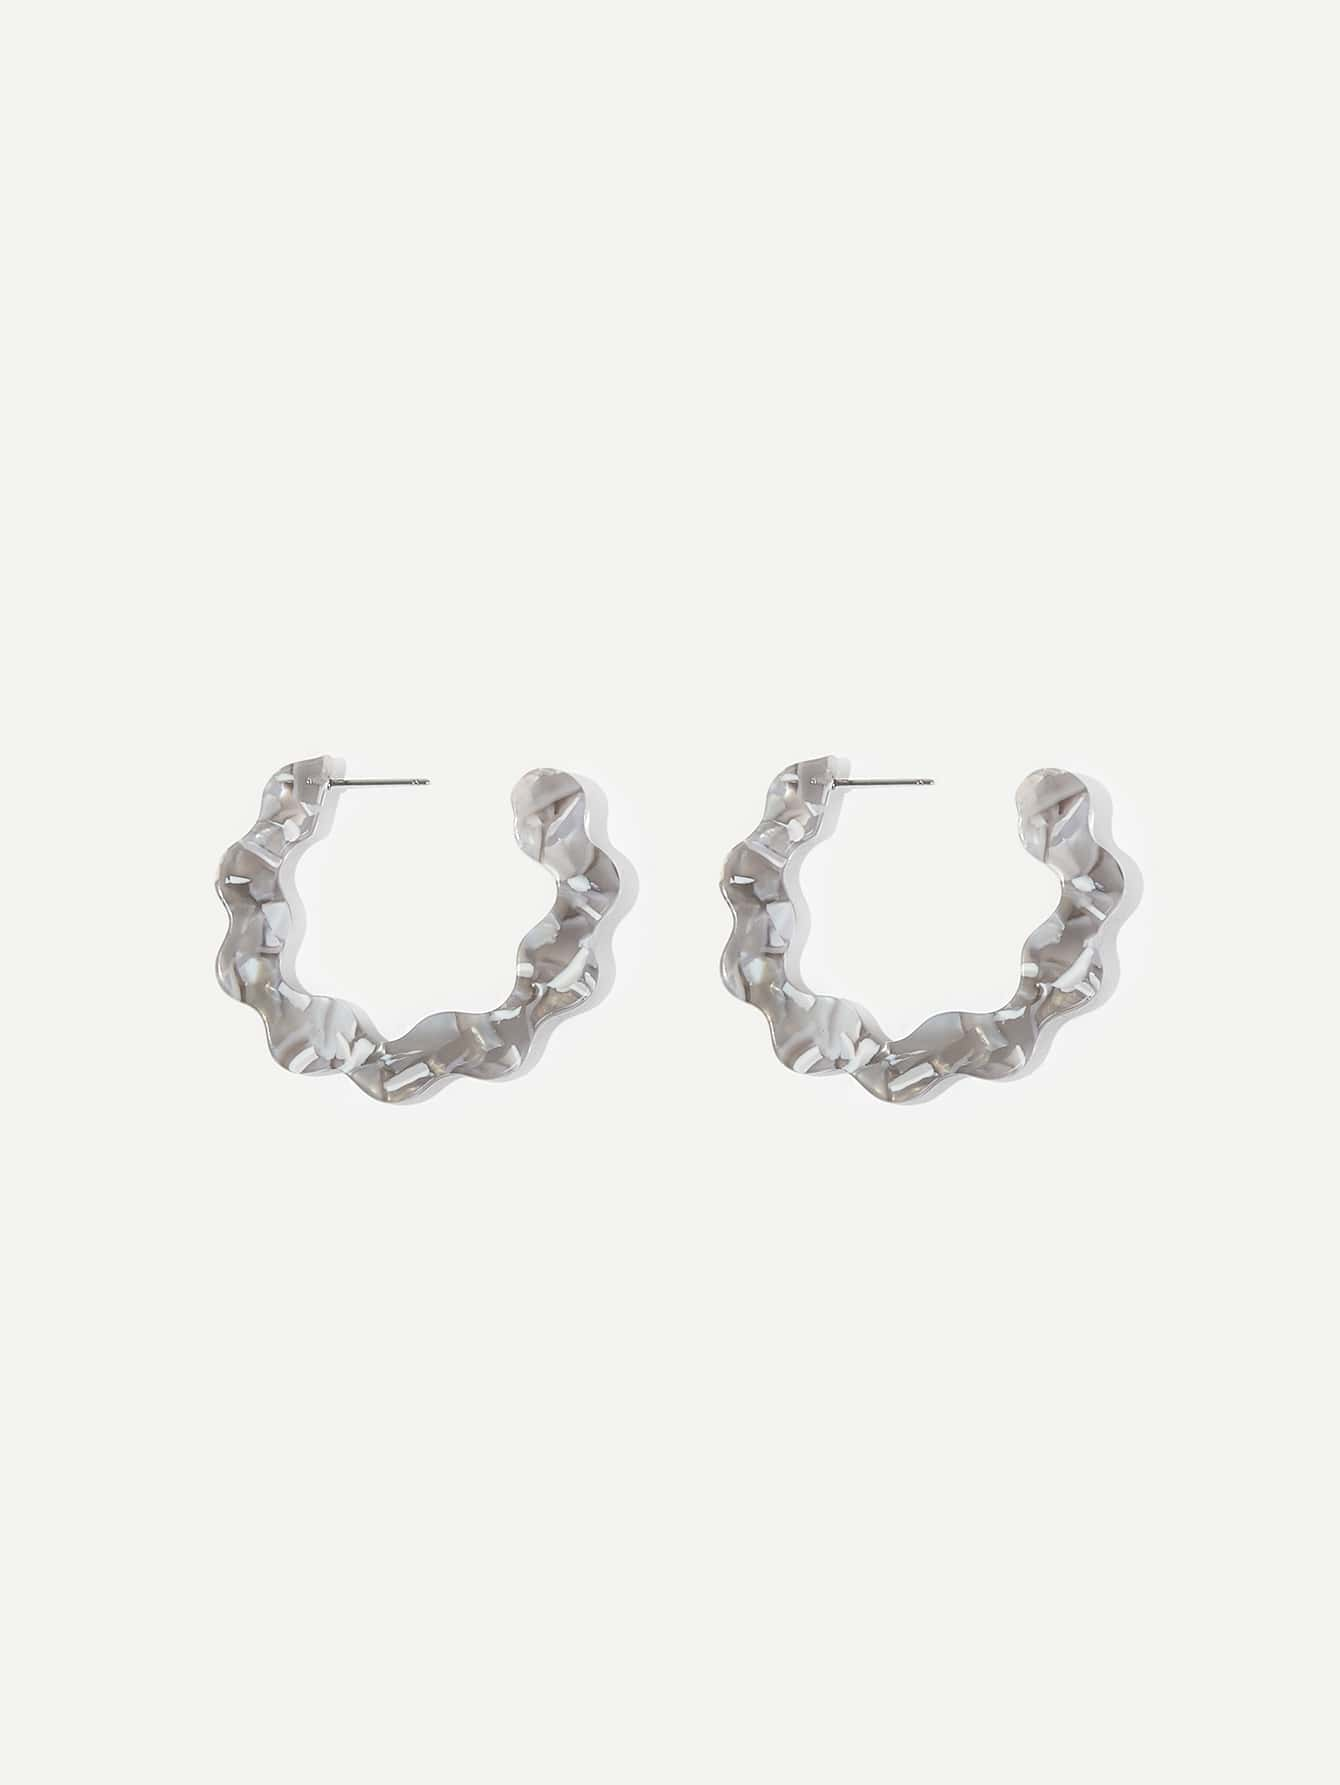 Marble Pattern Scalloped Open Hoop Earrings 1pair